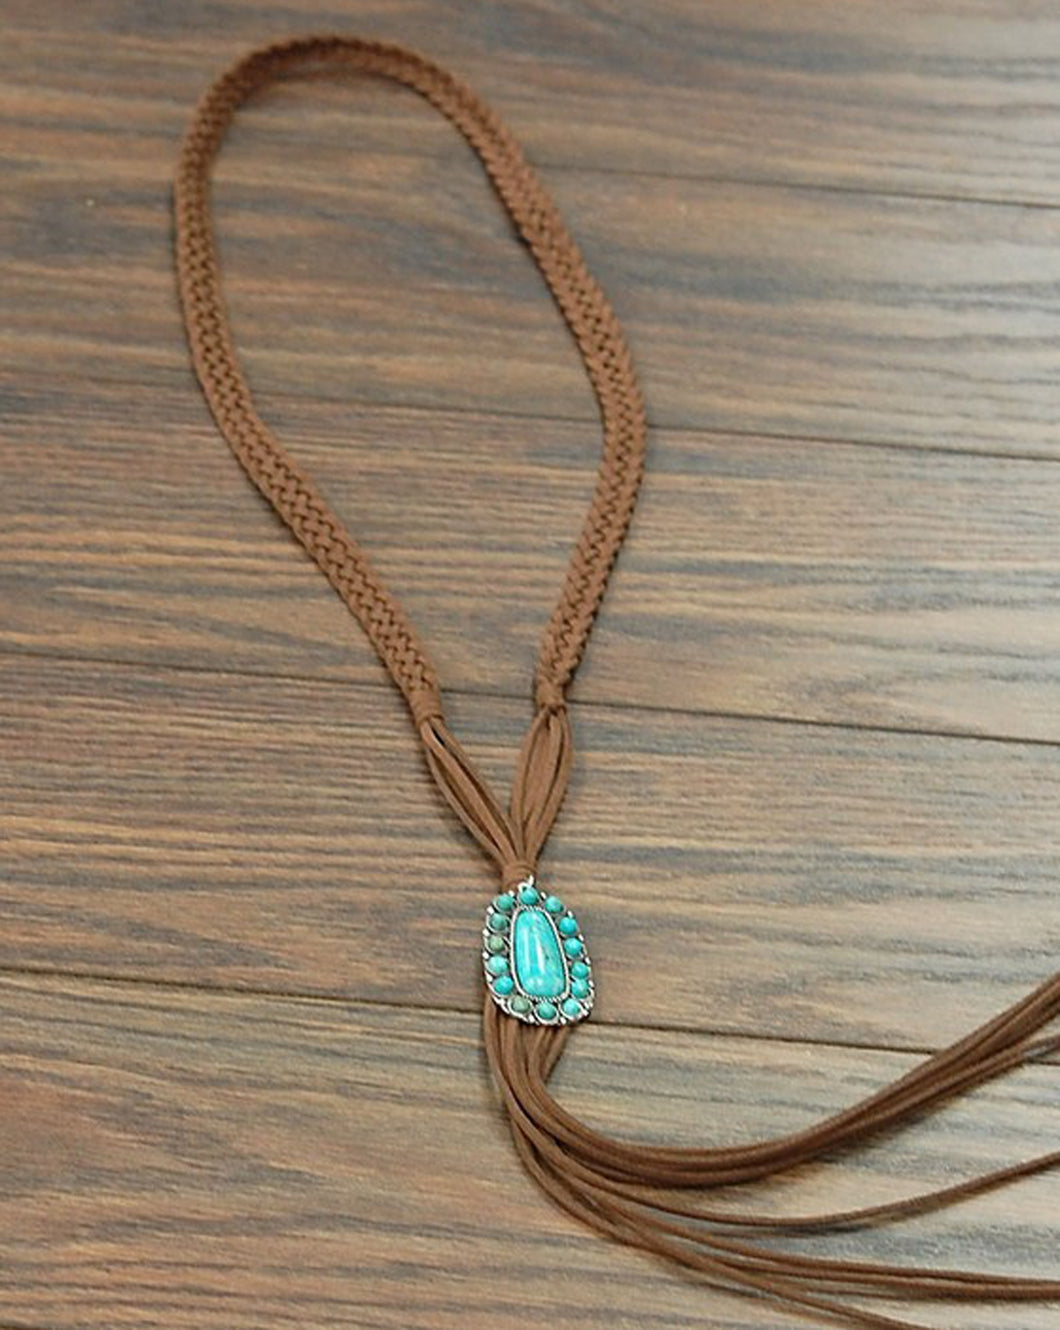 THE SPITFIRE BRAIDED SUEDE NECKLACE